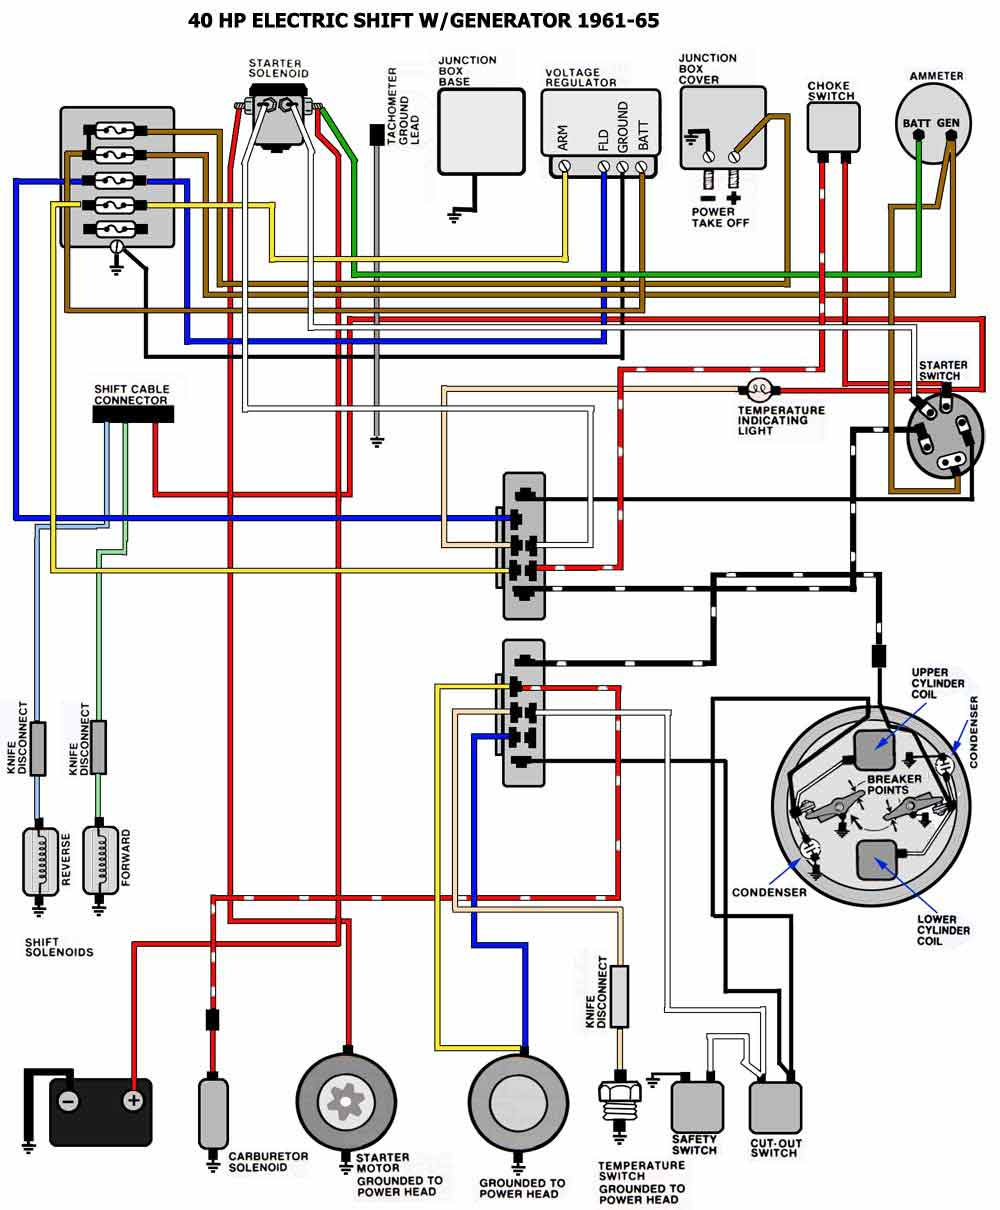 wiring harness diagram 85 40 hp mariner diagram base website hp ...  diagram base website full edition - villegiardinifirenze